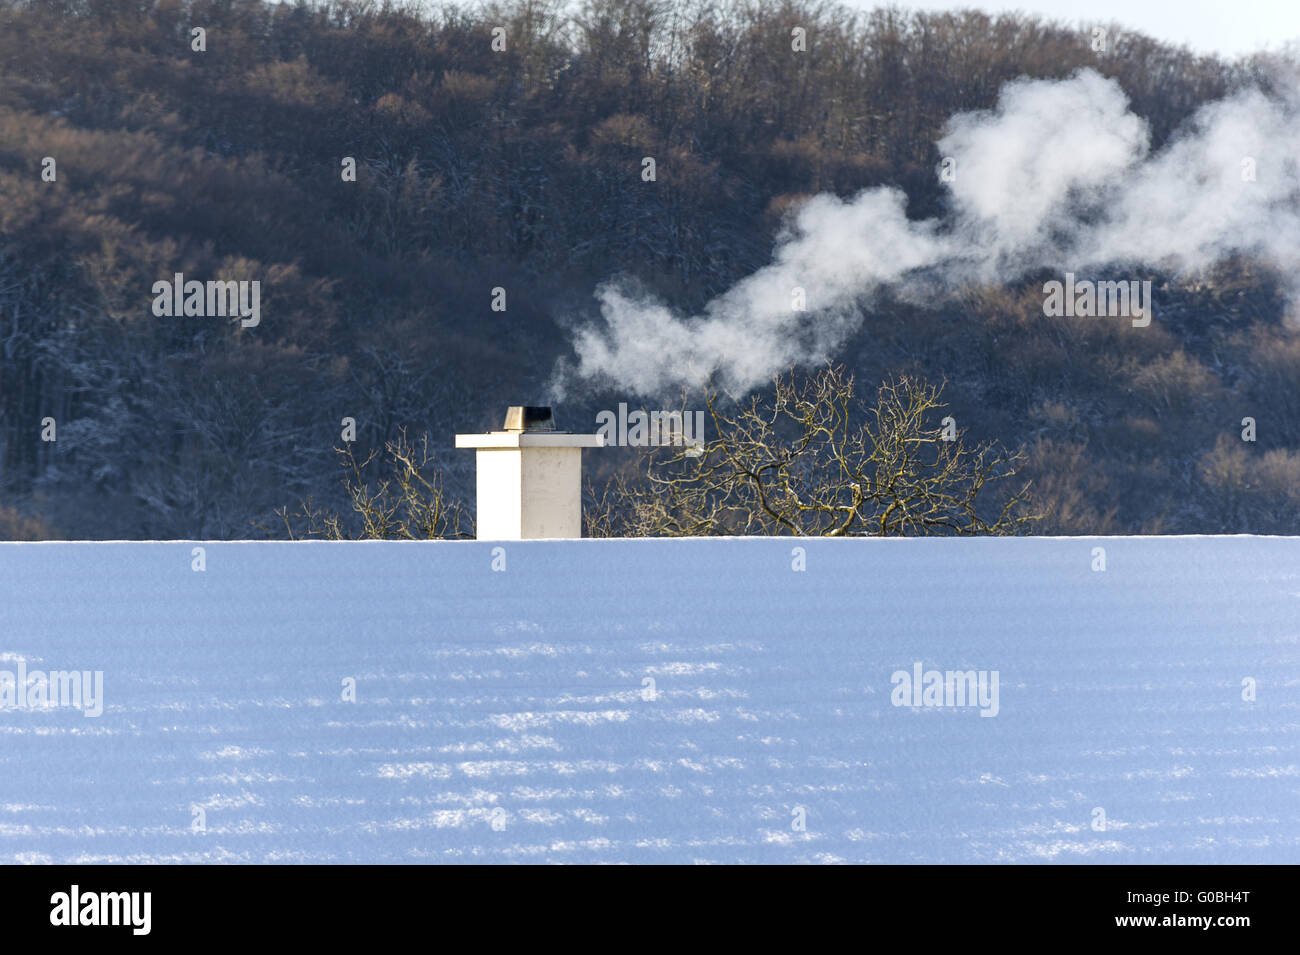 Exhaust pollution by residential houses in winter - Stock Image